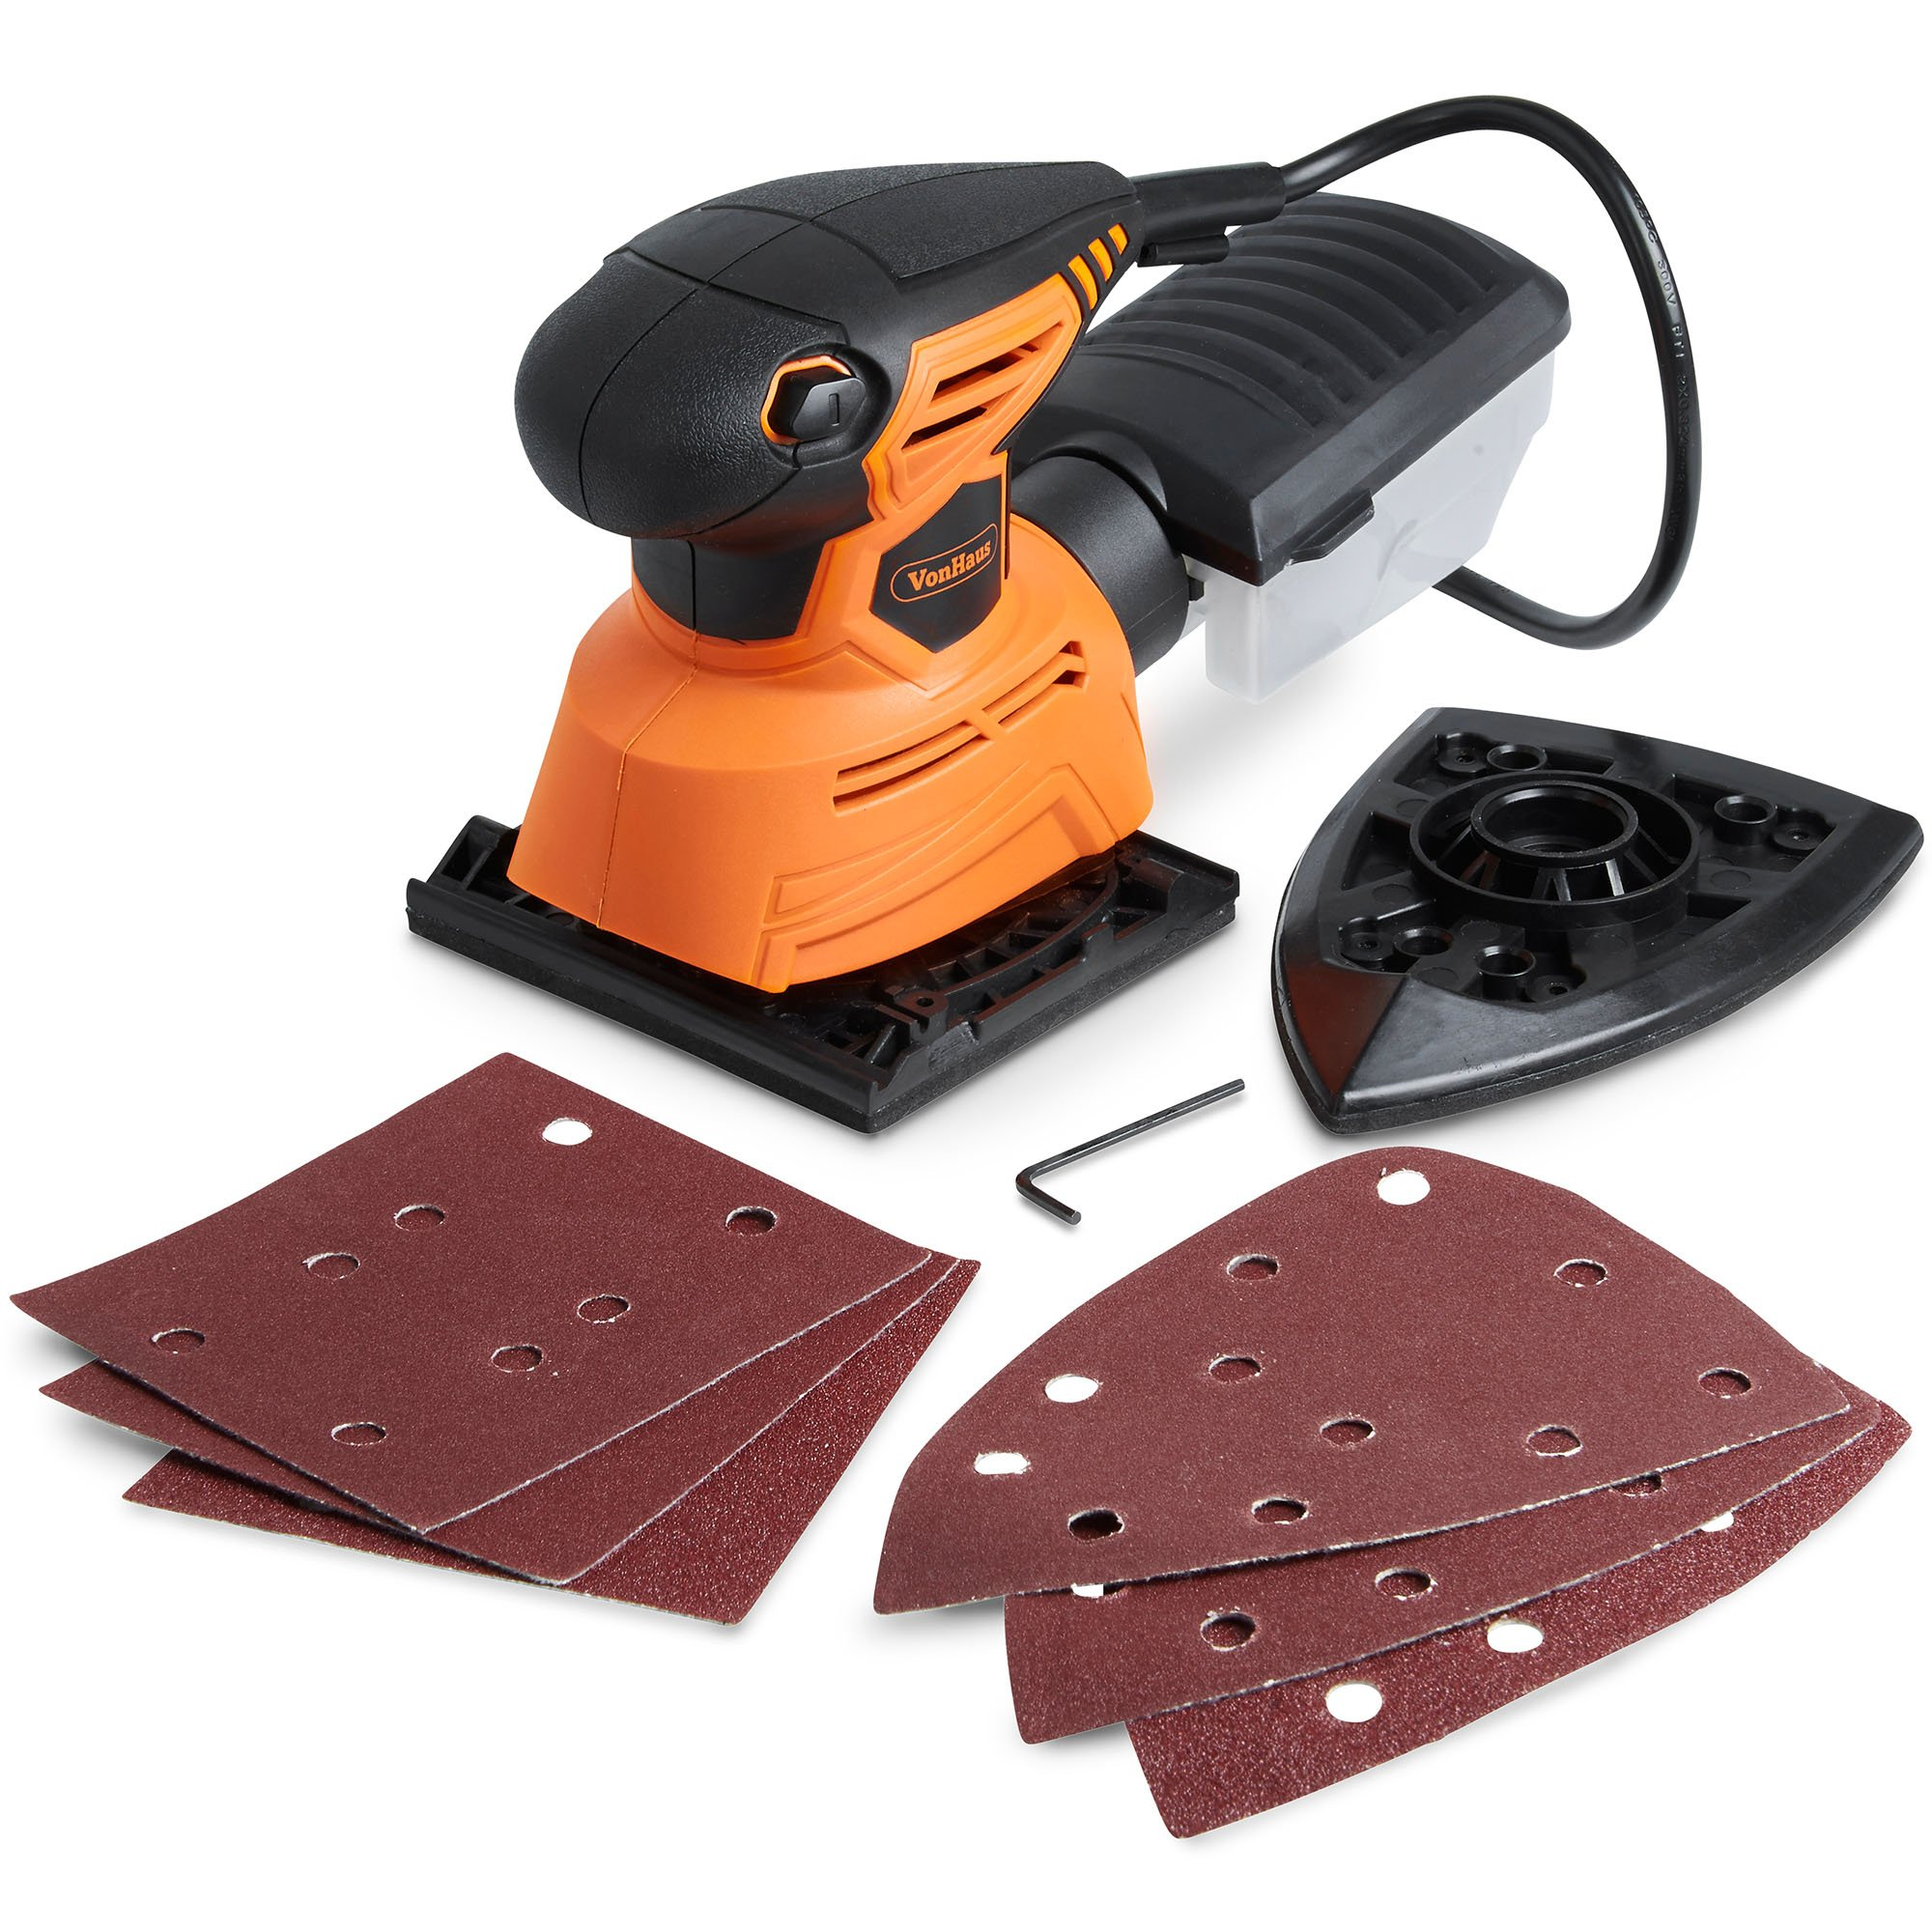 VonHaus 1.1A 2 in 1 Sheet & Detail Sander - 14000 RPM with 6 Sanding Sheets, Compact Lightweight Design with Dust Extraction System and 6ft Power Cord by VonHaus